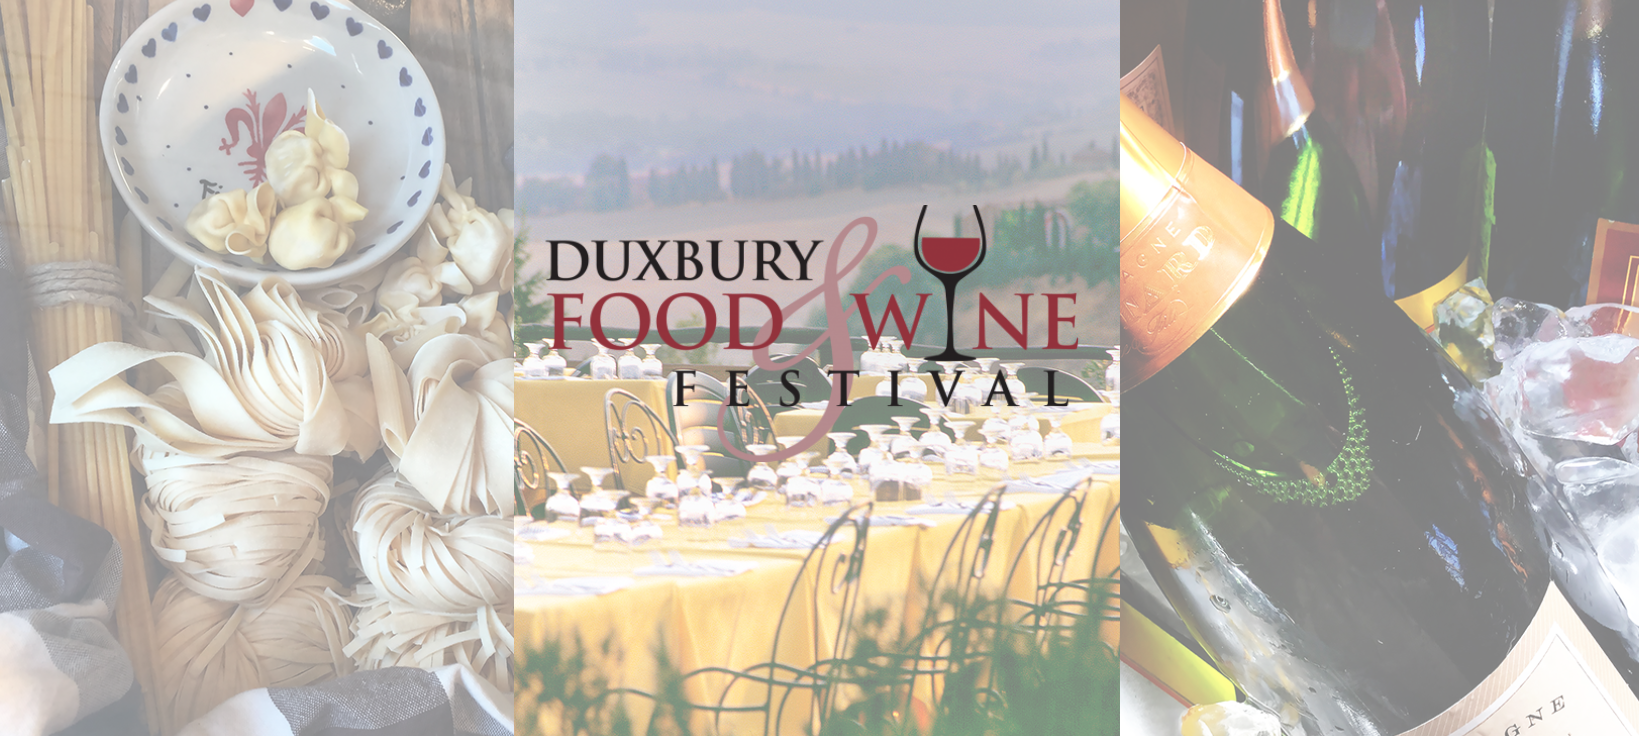 liv joins the duxbury food and wine festival.png